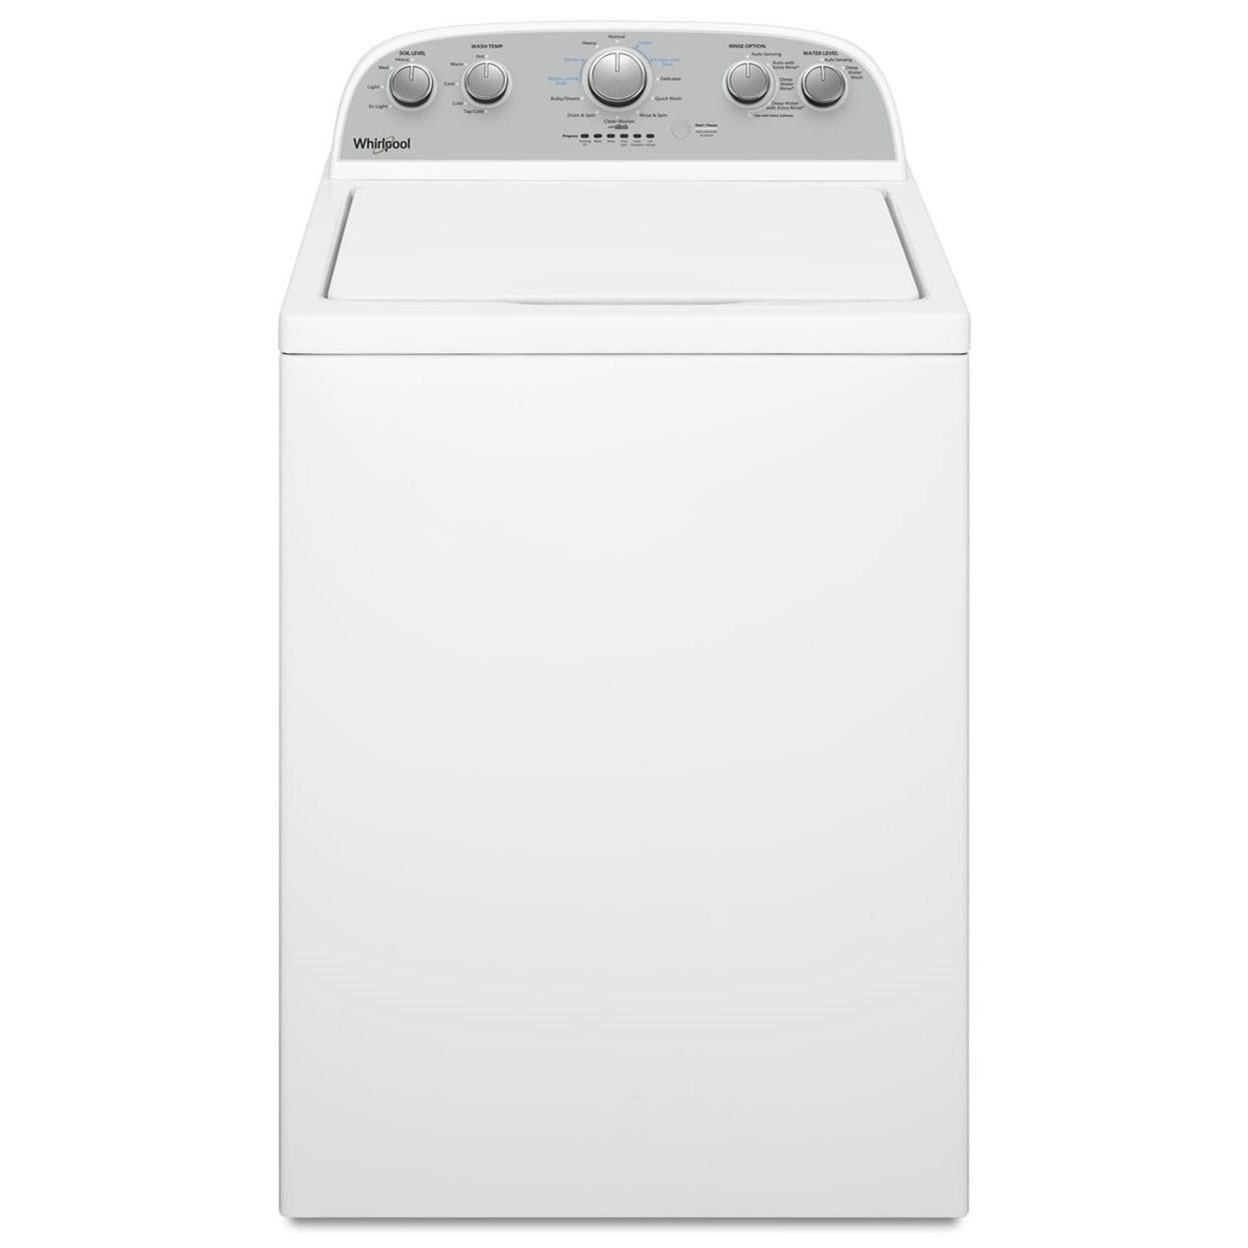 Top Load Washers 3.8 cu. ft. Top Load Washer by Whirlpool at Furniture and ApplianceMart